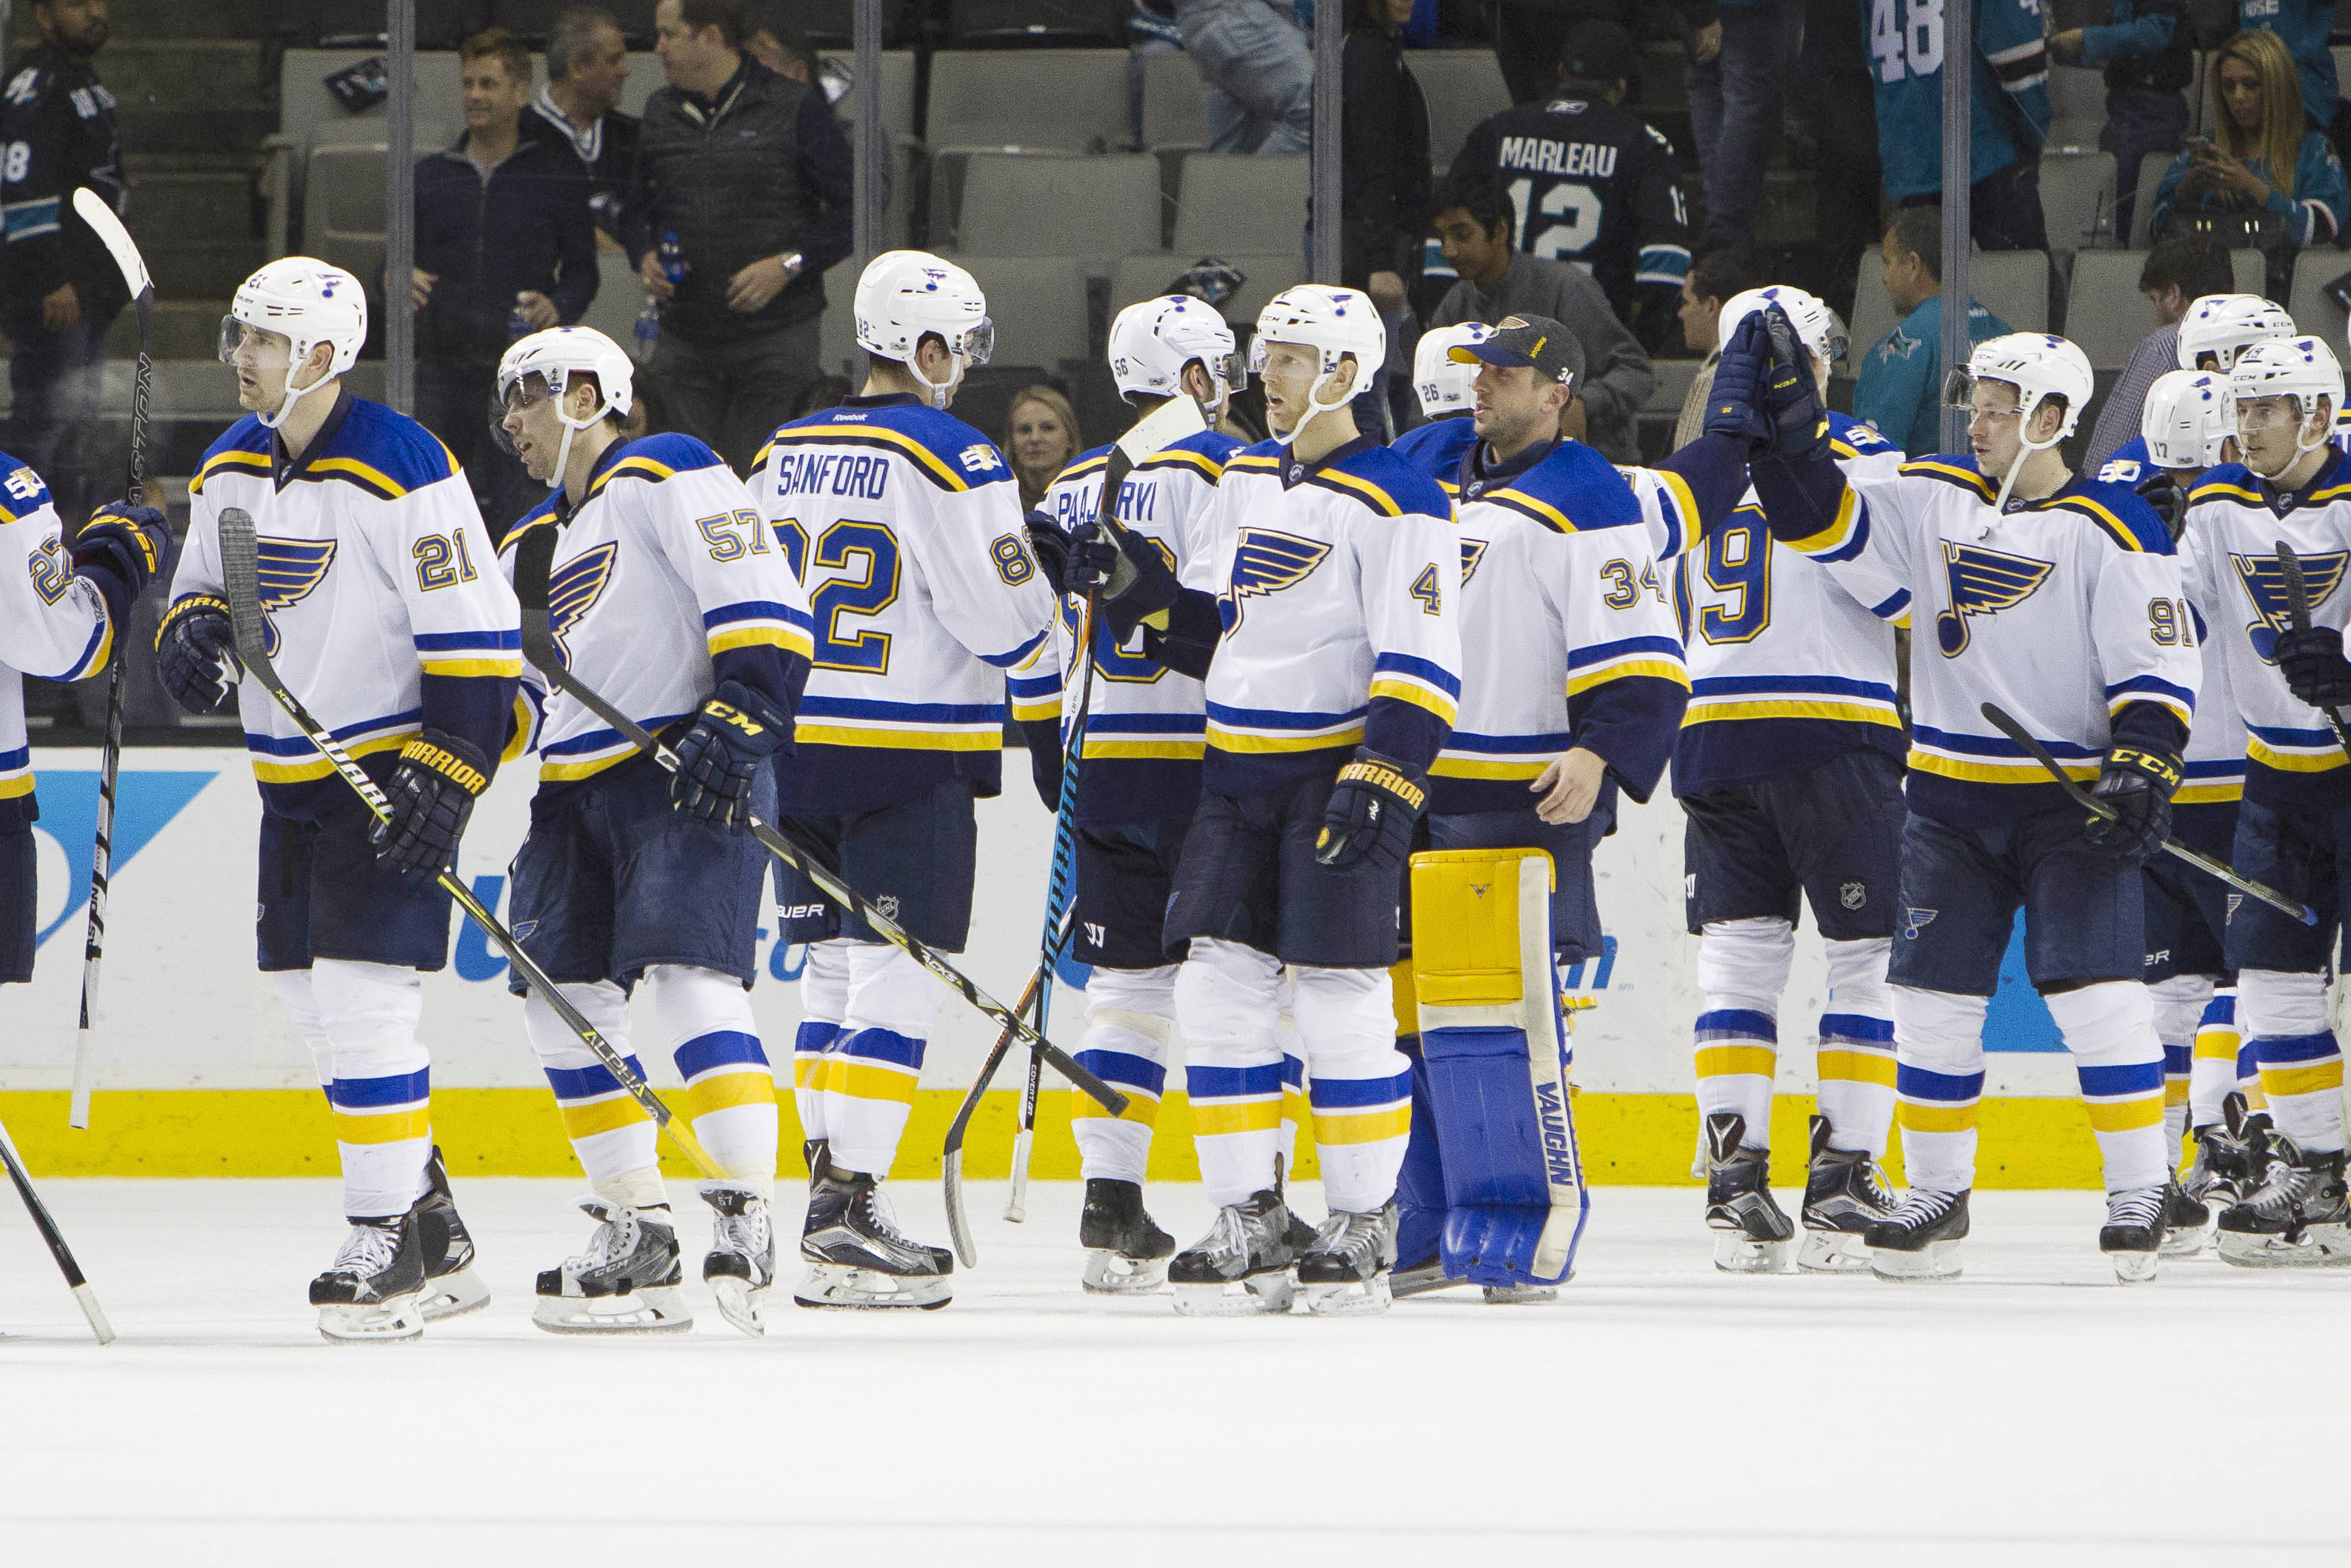 9949264-nhl-st.-louis-blues-at-san-jose-sharks